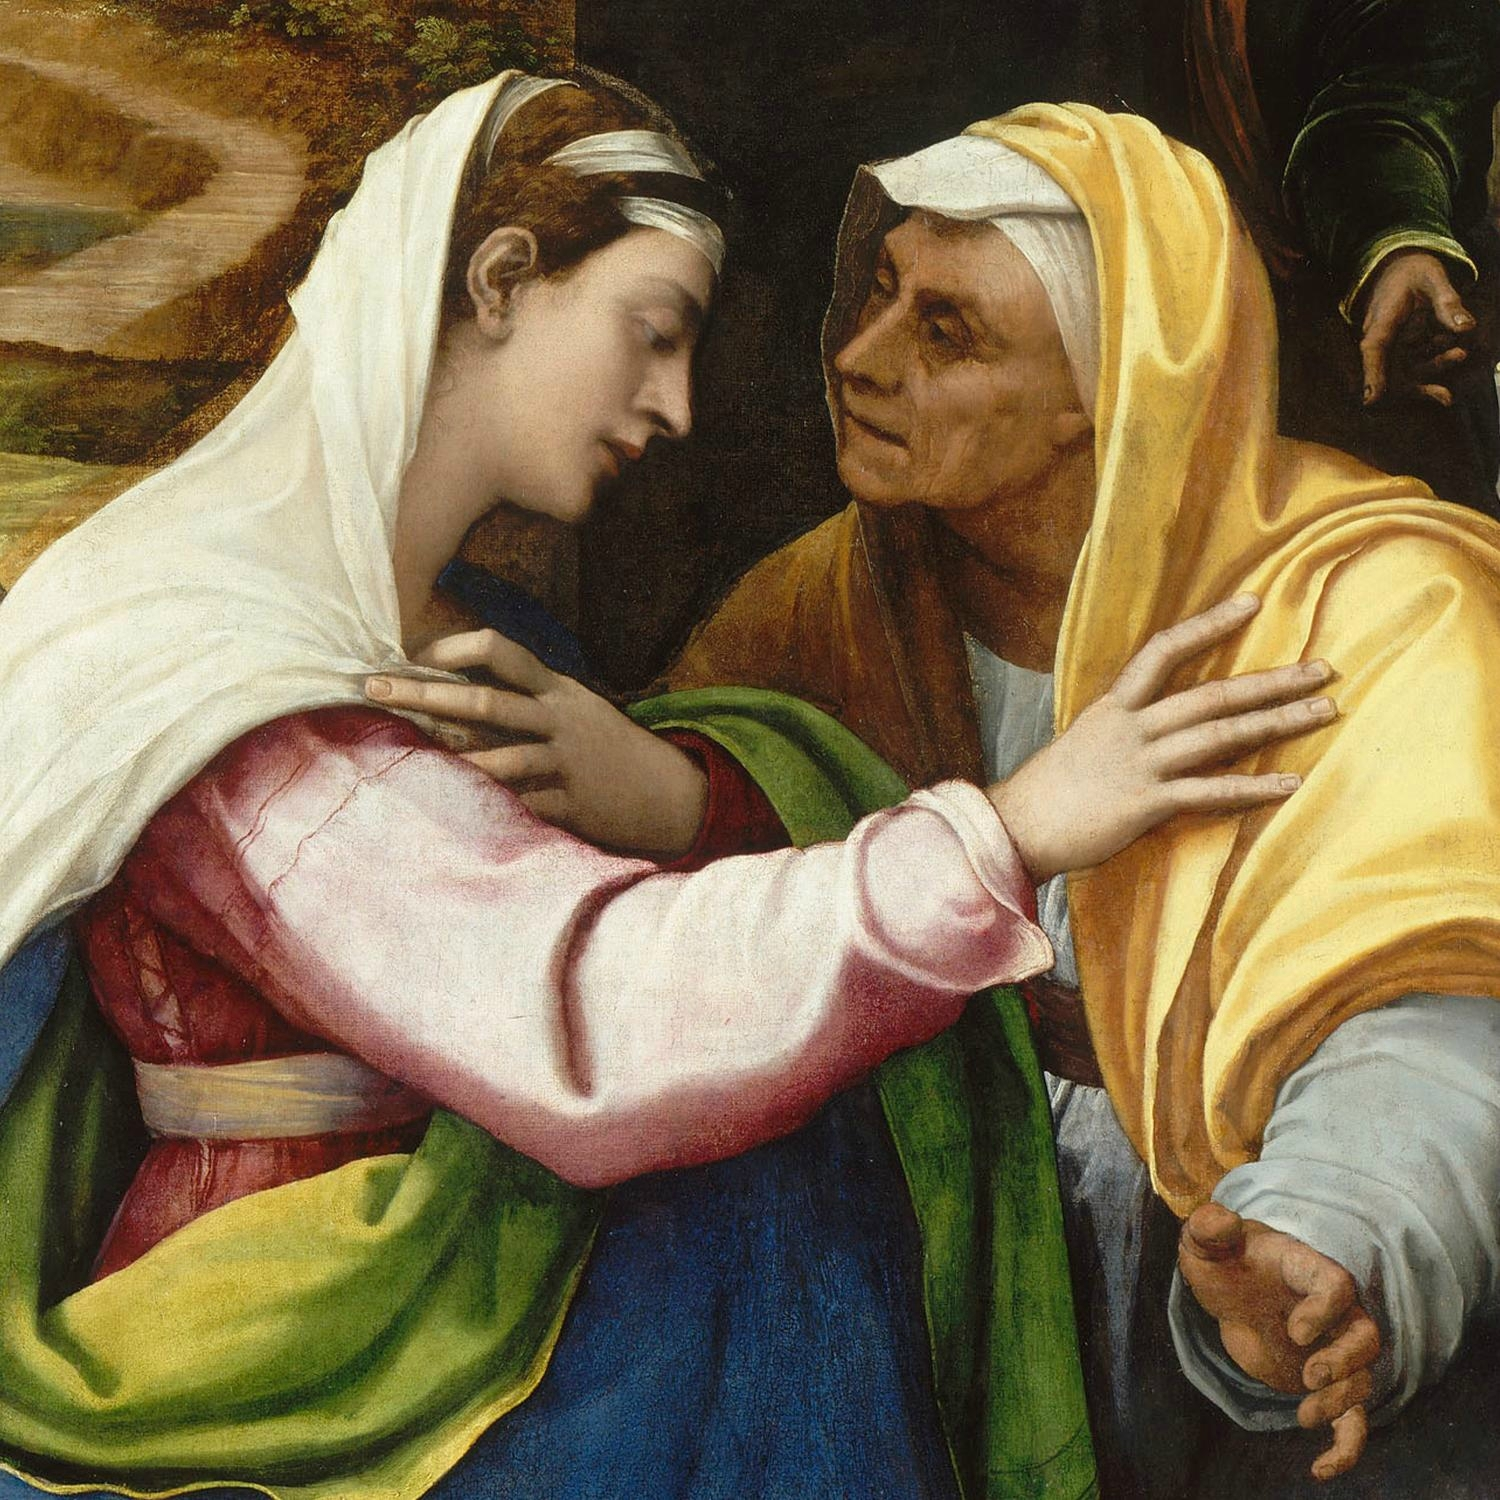 Exhibition devoted to the partnership between Michelangelo & Sebastiano opens